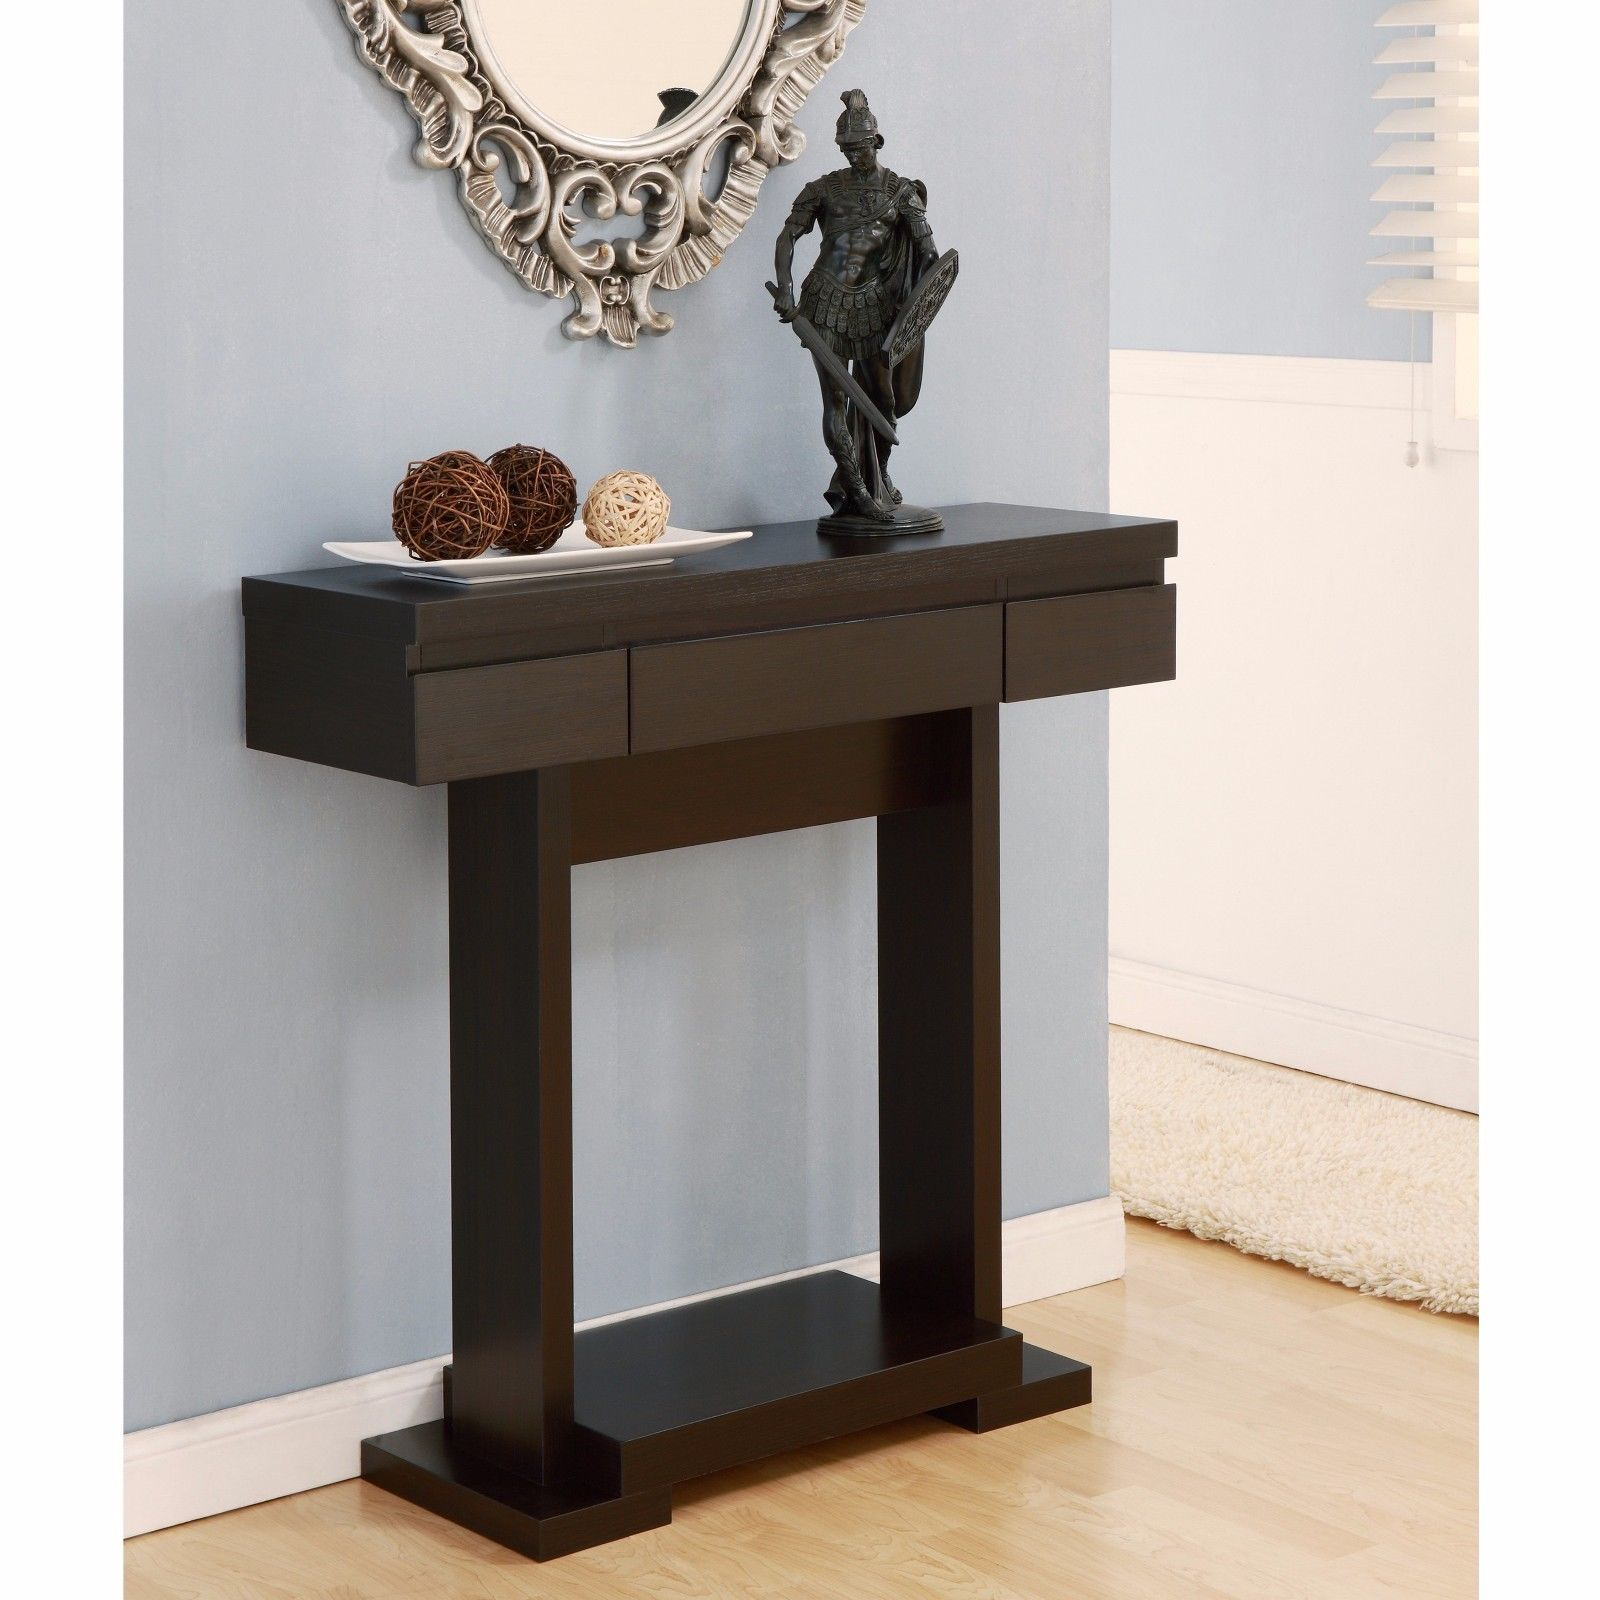 small accent tables kitchen spaces entryway drawers narrow table with drawer target dining room chairs farmhouse oak furniture round marble metal and glass nesting bedroom